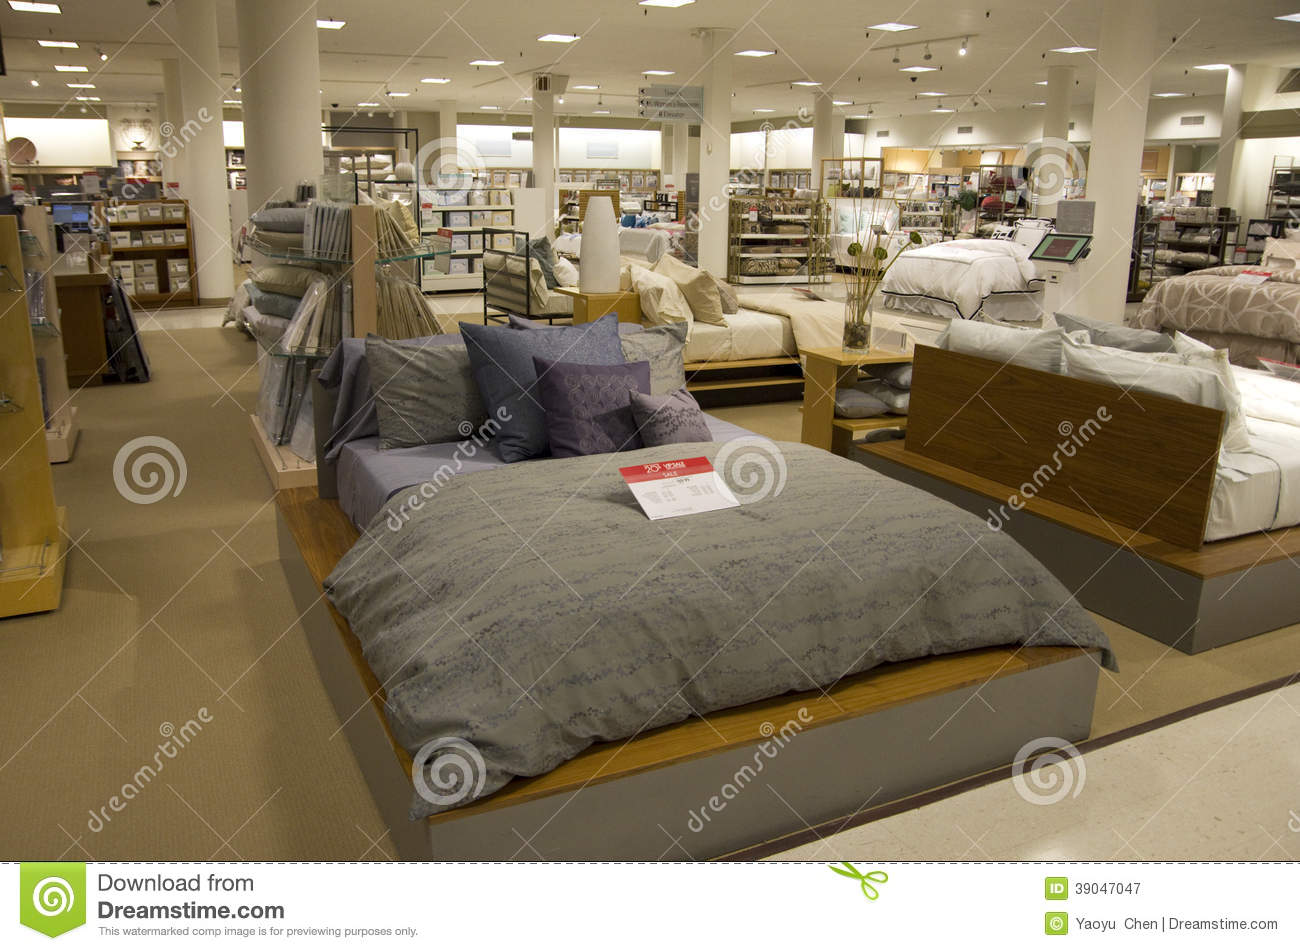 Bedding and home goods department store stock photo image 39047047 - Bedroom decor shop online ...